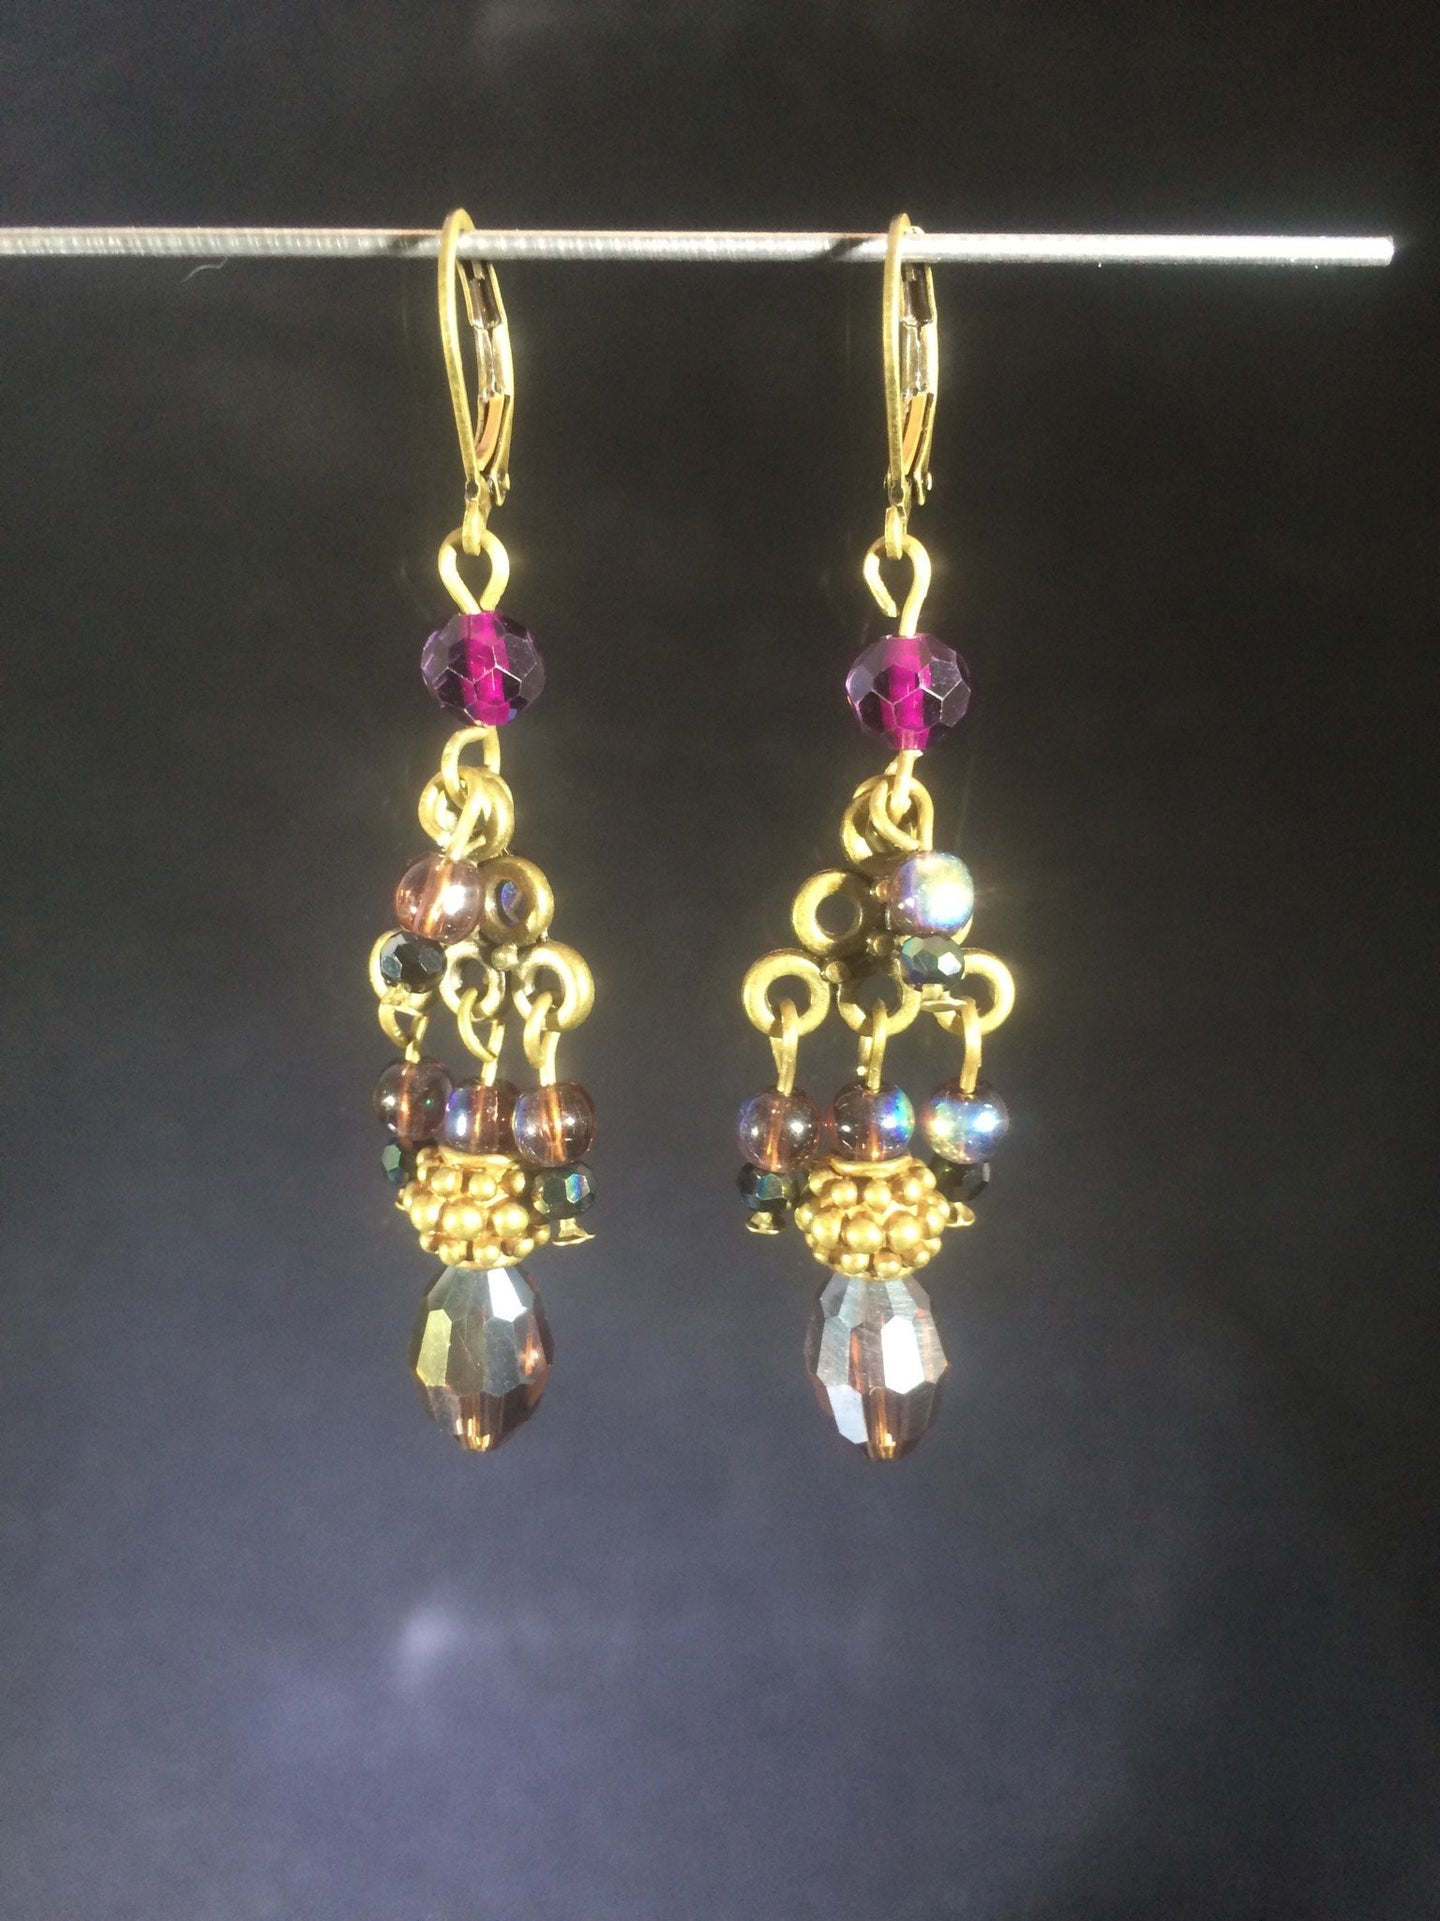 This pair of layered chandelier leverbackåÊearrings is made with a mixture of metal beads, glass peals, and faceted Czech crystal beads, set on plated zinc pewter chandeliers.